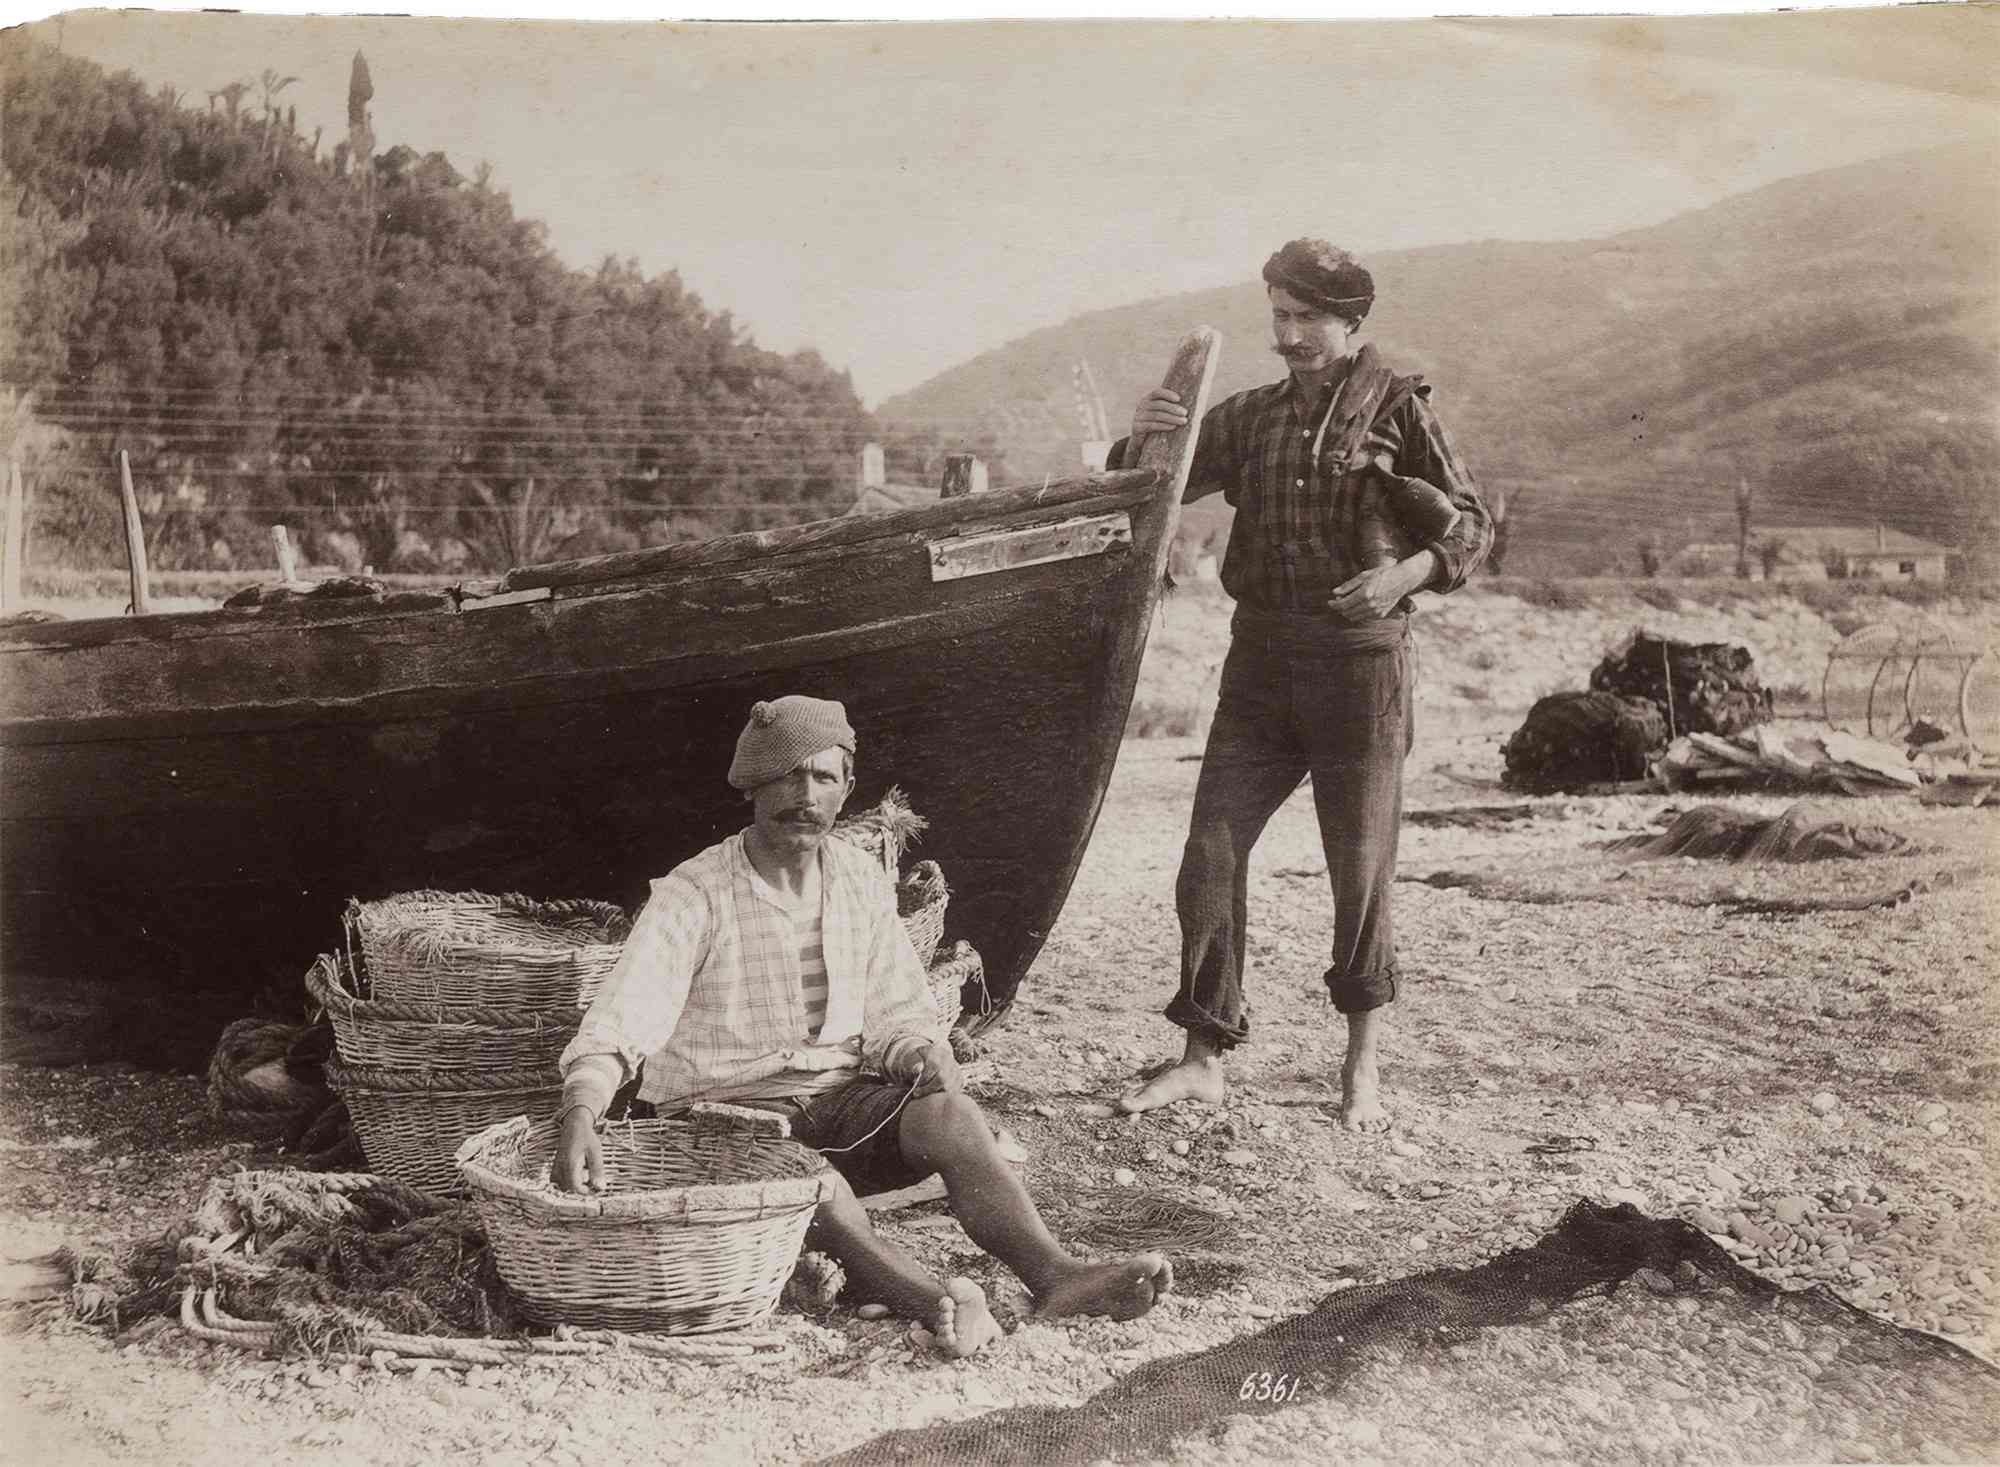 The Aci Trezza is a picturesque fishing village,which was also the setting for Giovanni Verga's Novel I Malavoglia as well as for Luchino Visconti..